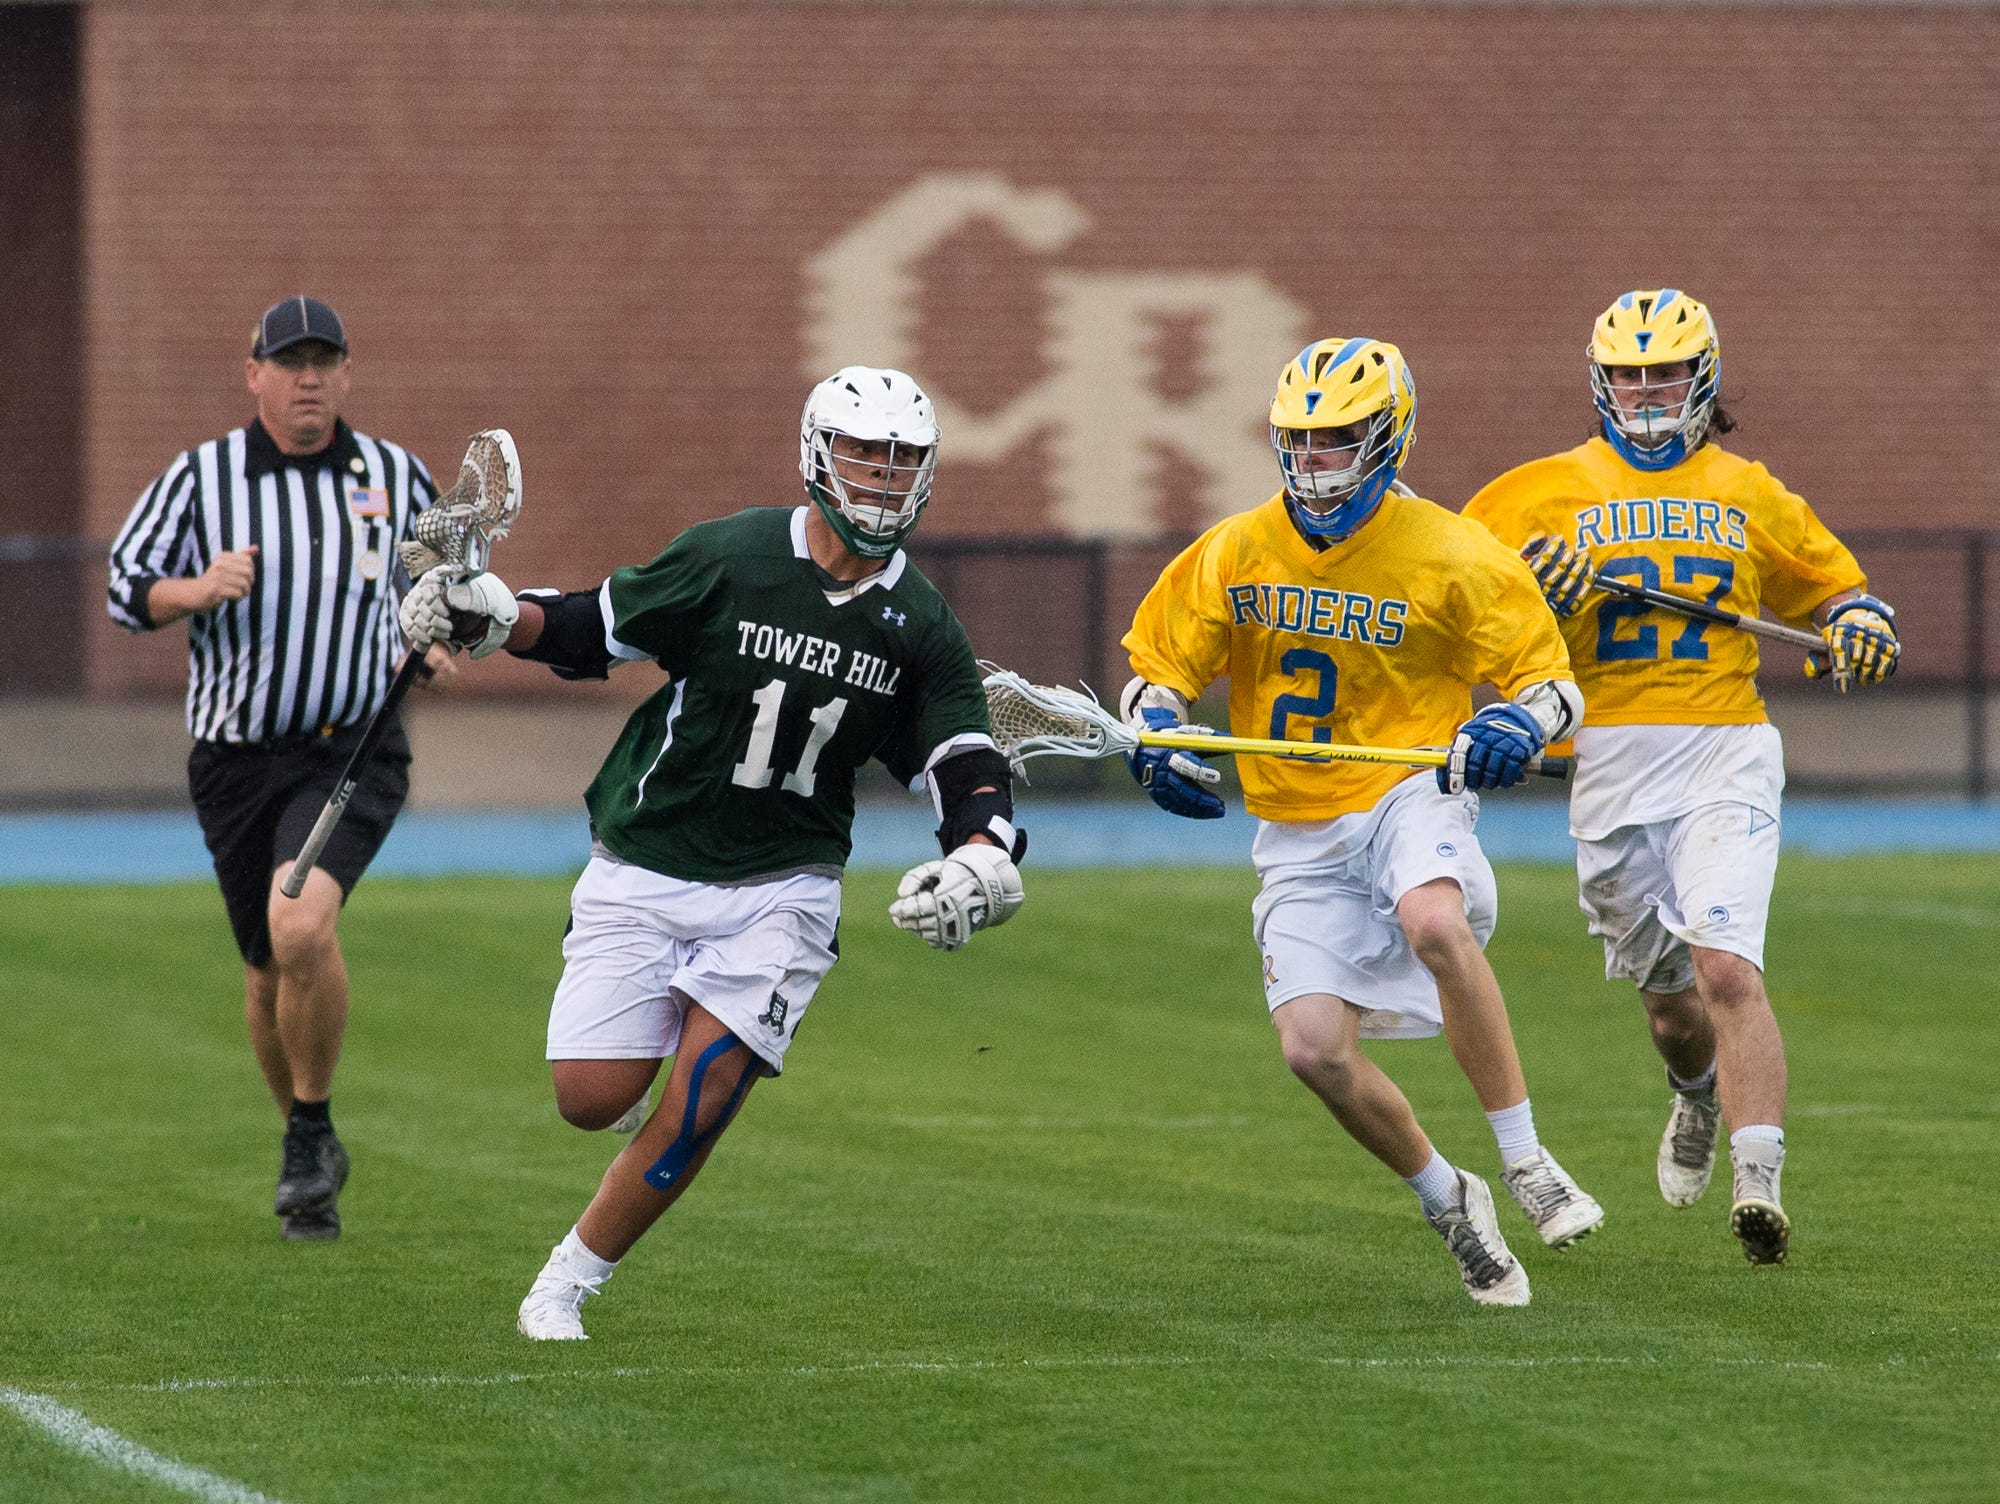 Tower Hills Noah Thomas (11) runs down the side line away from Caesar Rodney's players in their 11-9 win.